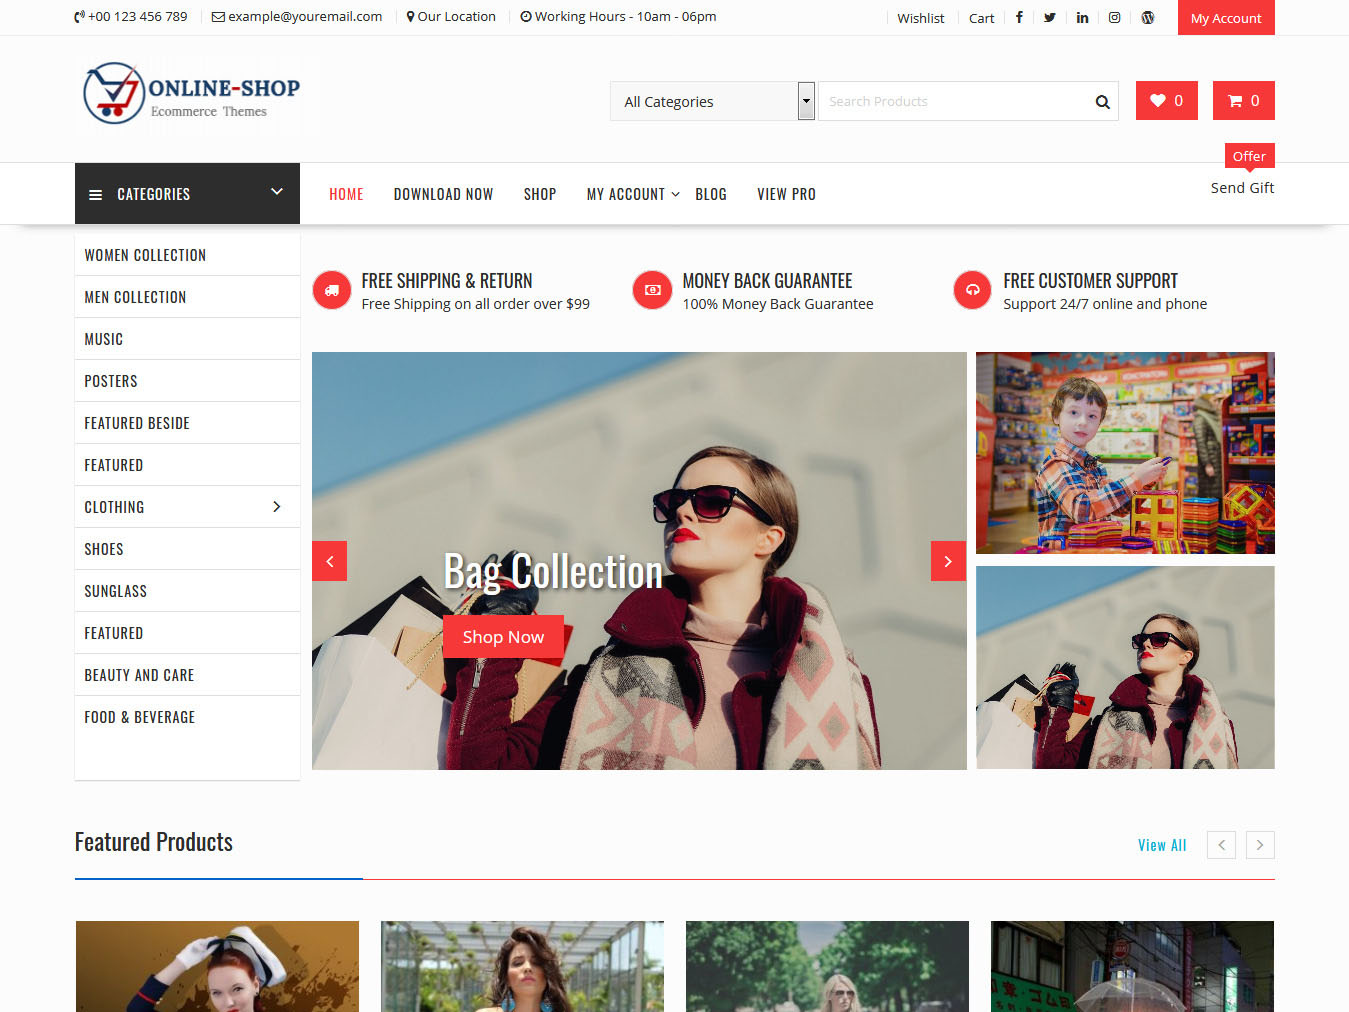 Online Shop - Best Free WordPress WooCommerce Theme